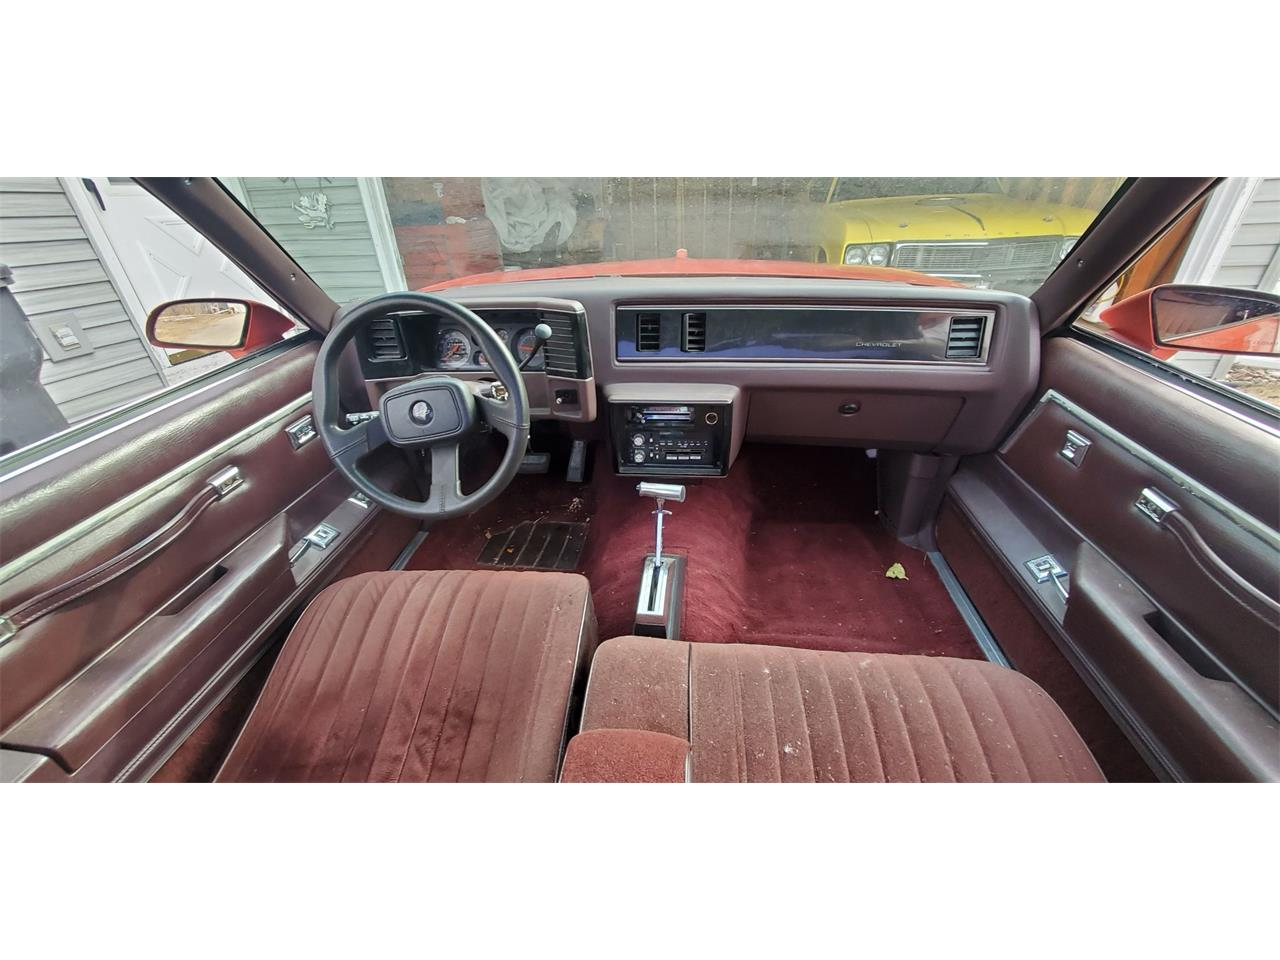 1986 Chevrolet El Camino SS (CC-1366090) for sale in Annandale, Minnesota